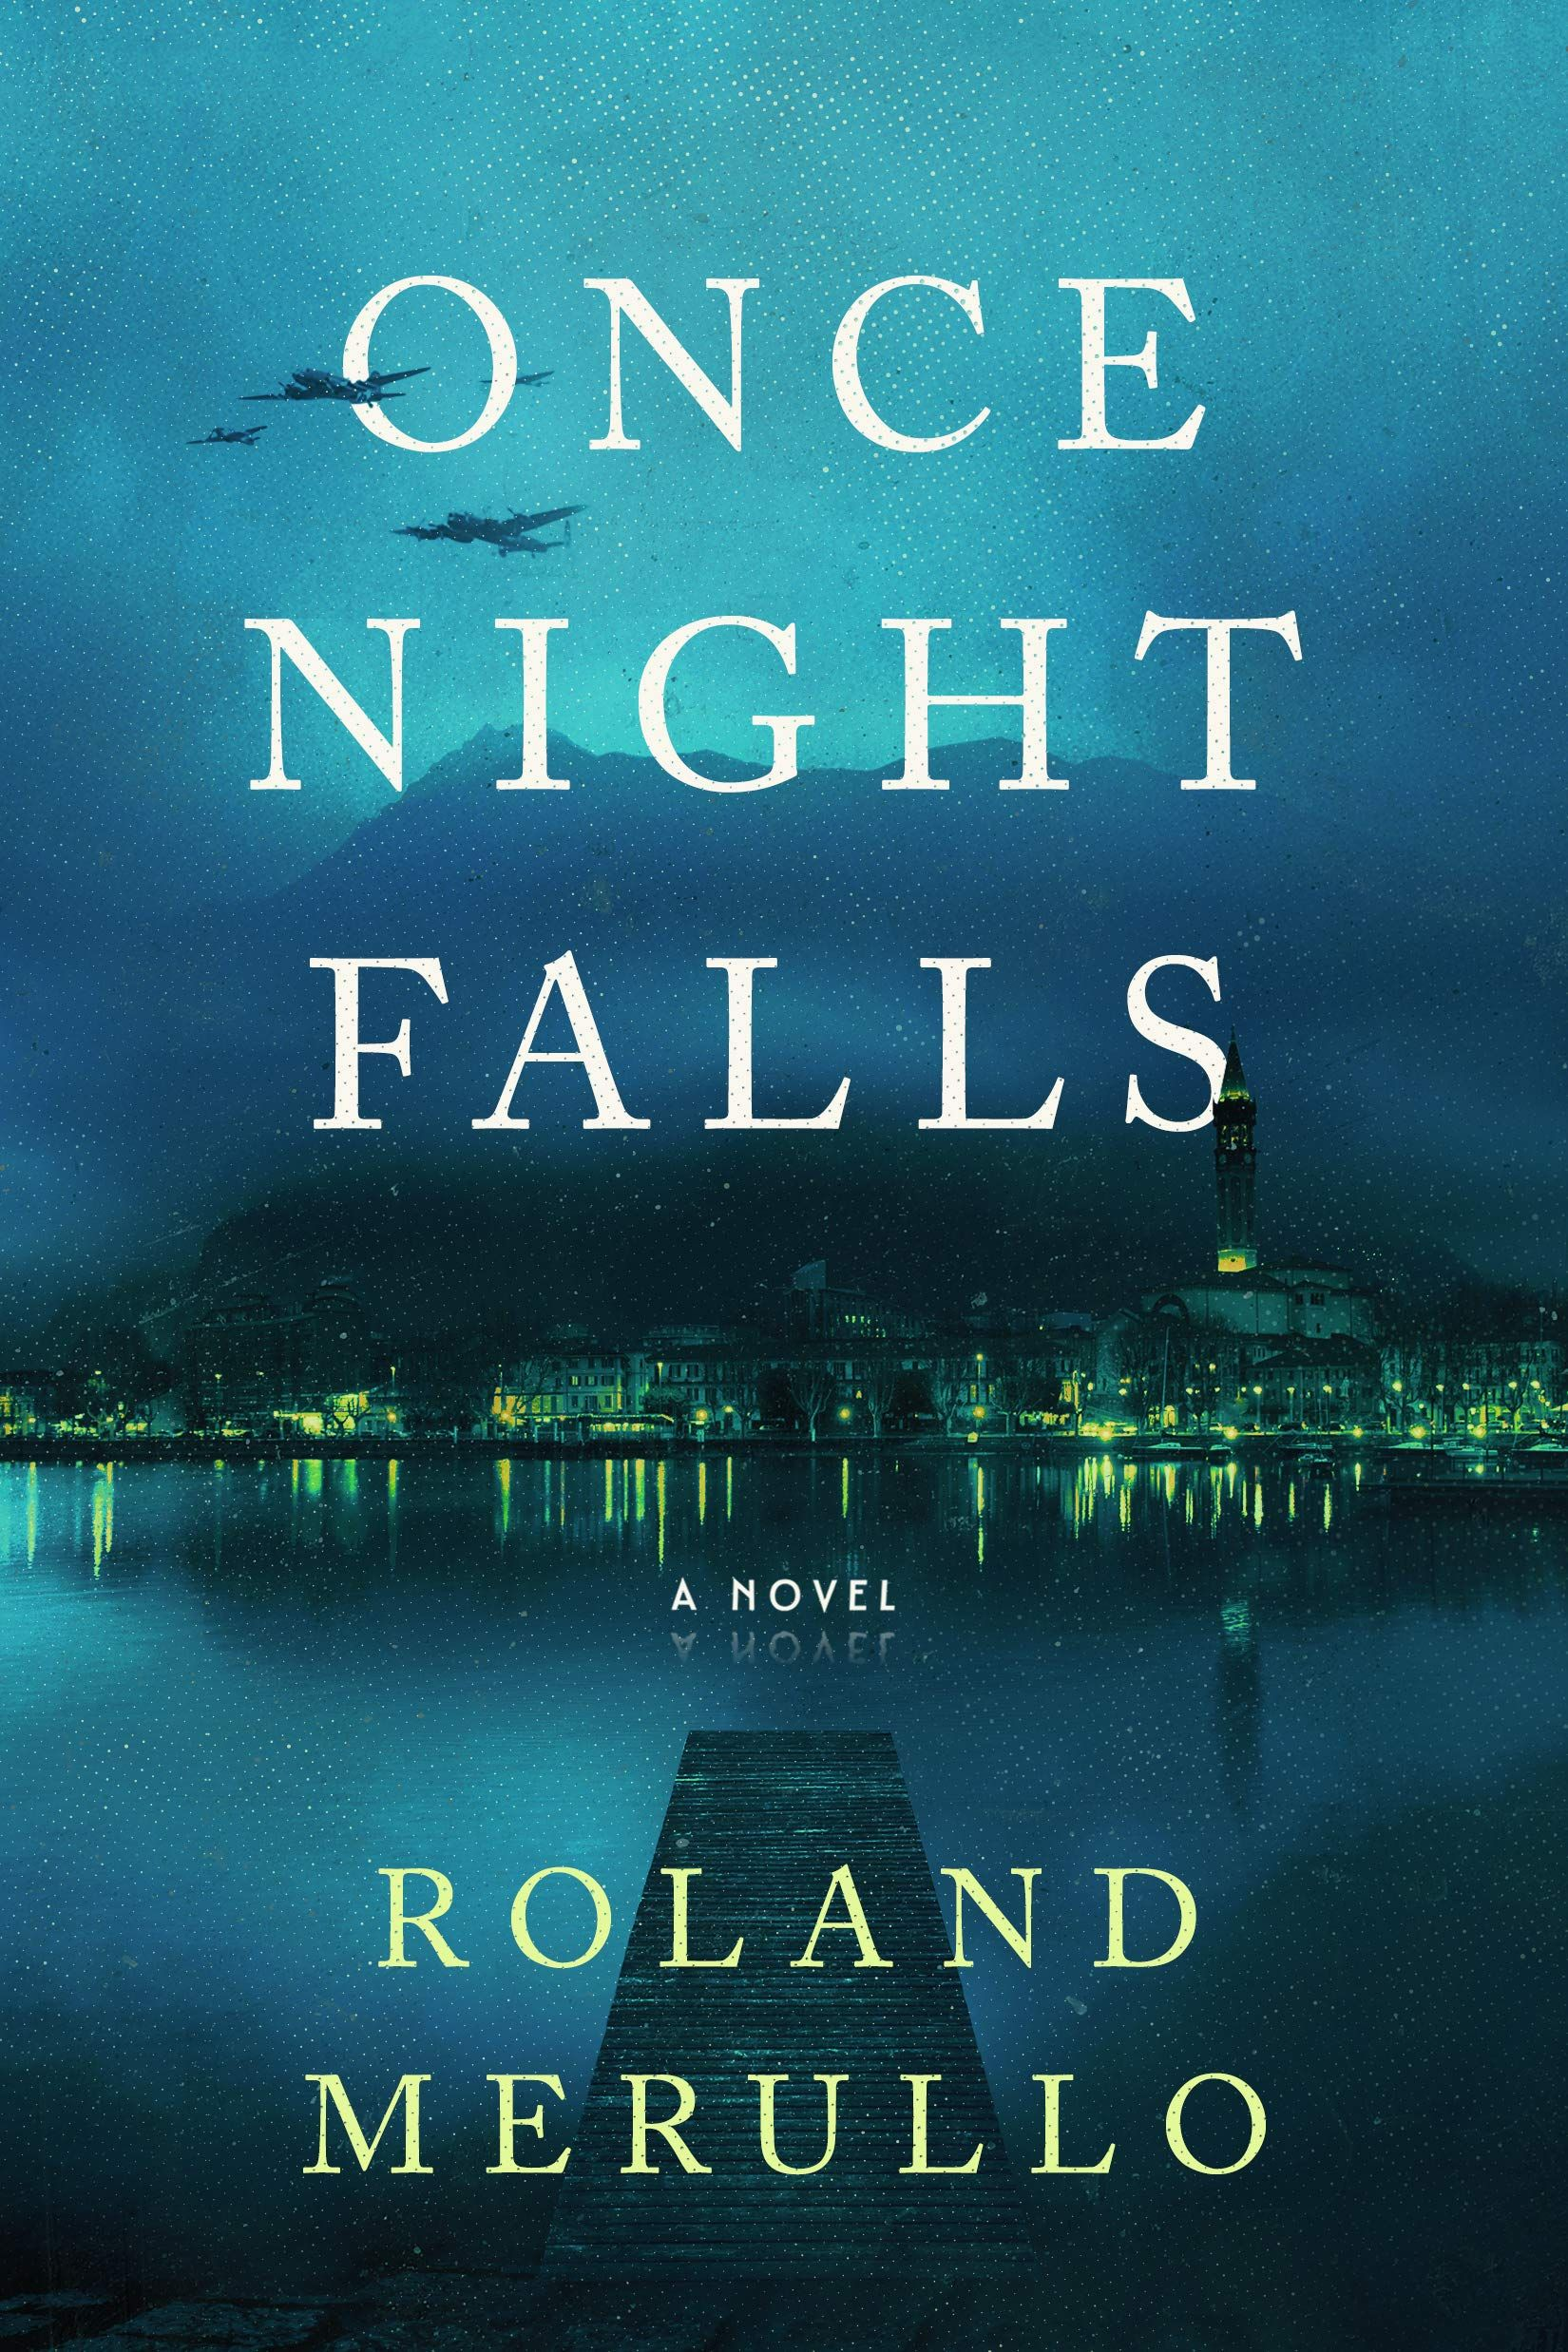 Read Once Night Falls By Roland Merullo Fallen Book Historical Fiction Books Fall Reading